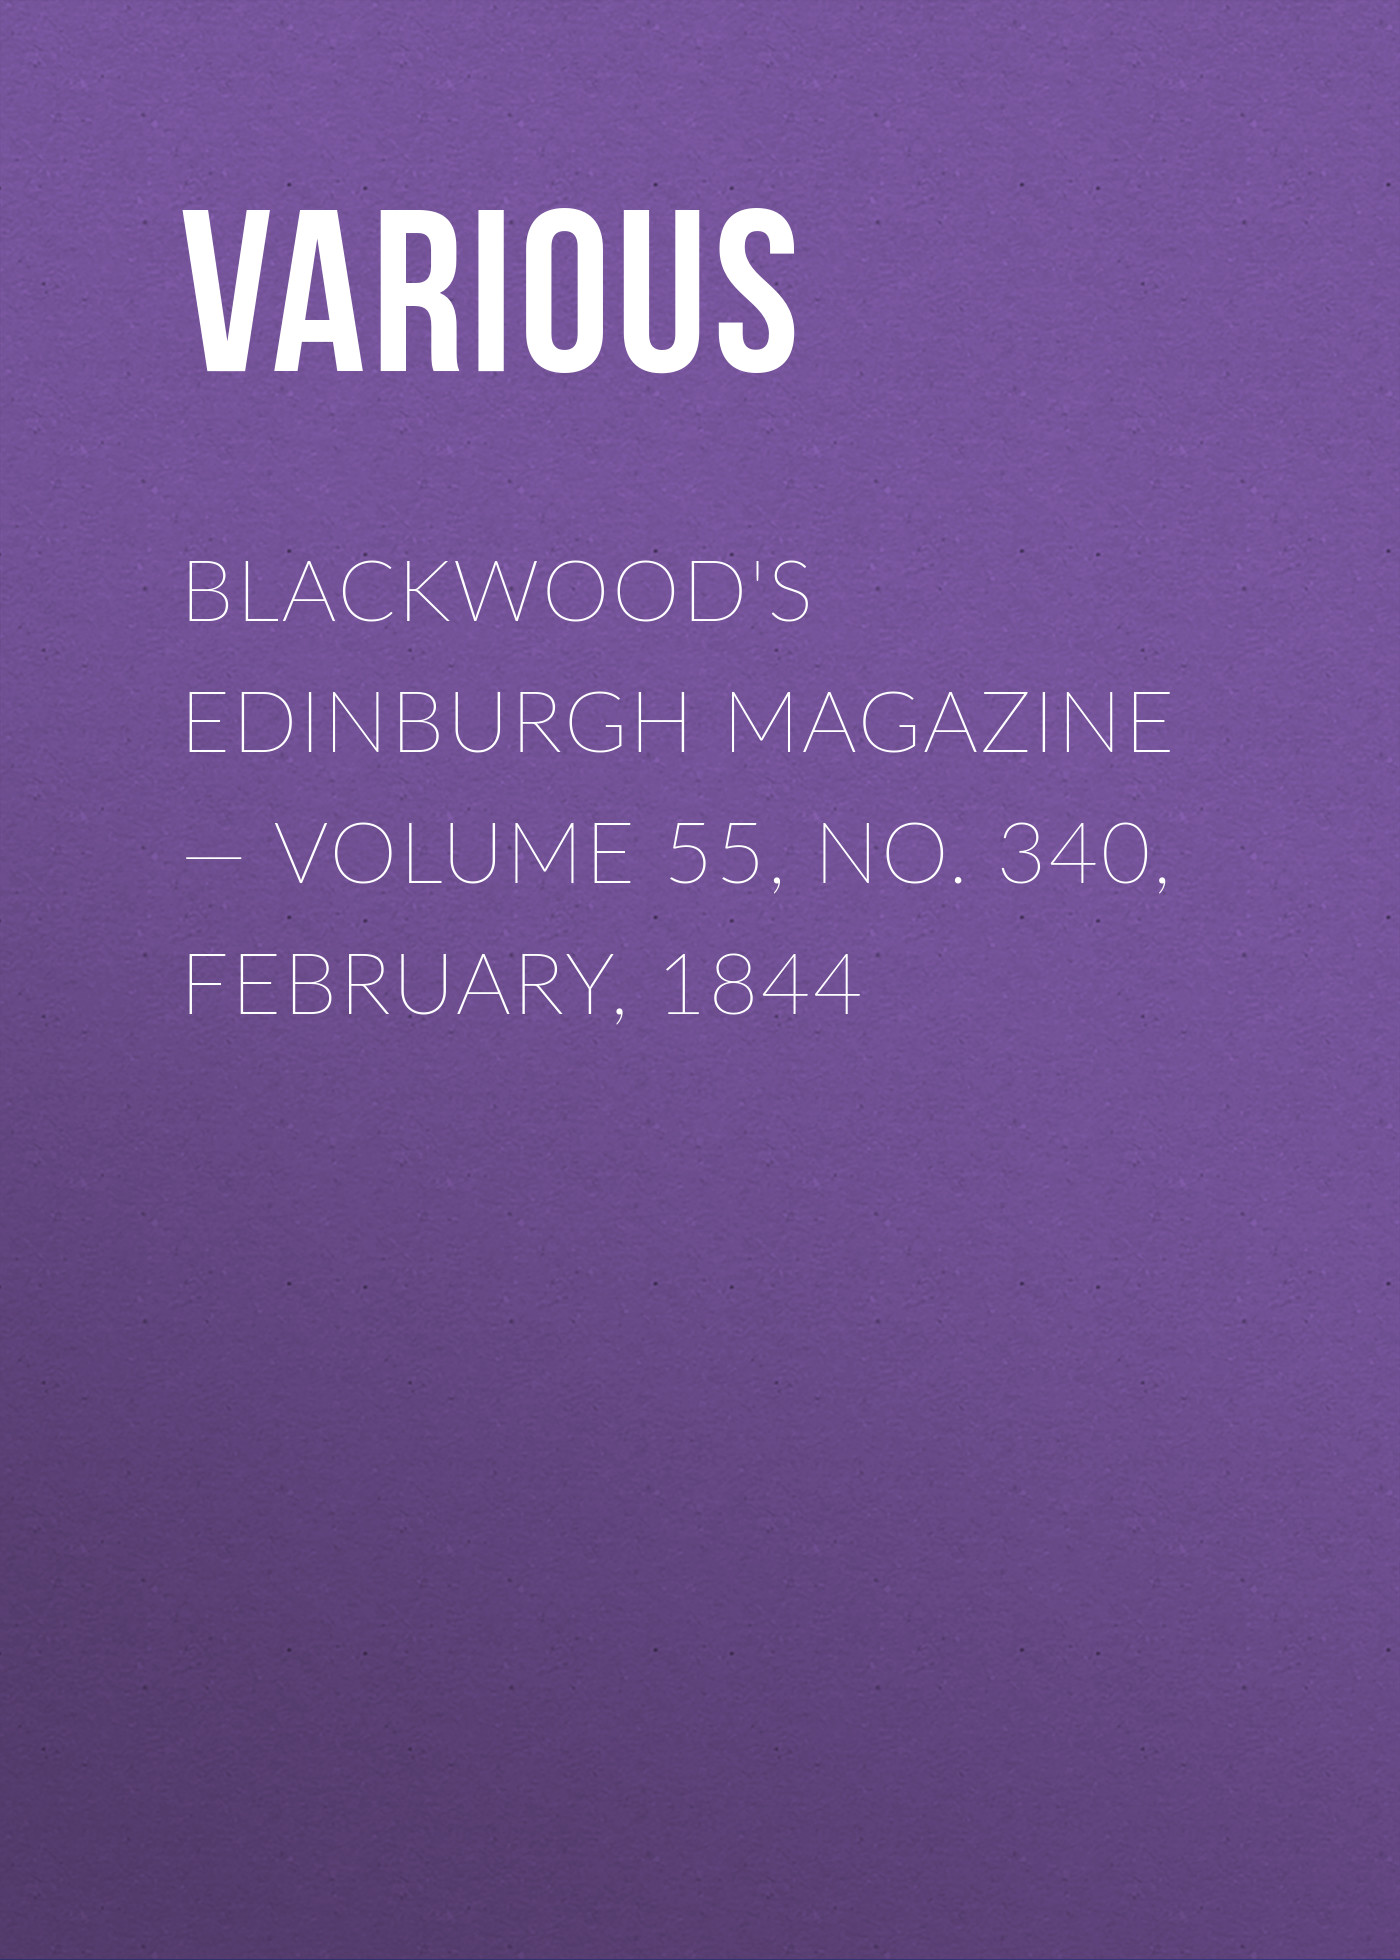 Blackwood's Edinburgh Magazine — Volume 55, No. 340, February, 1844